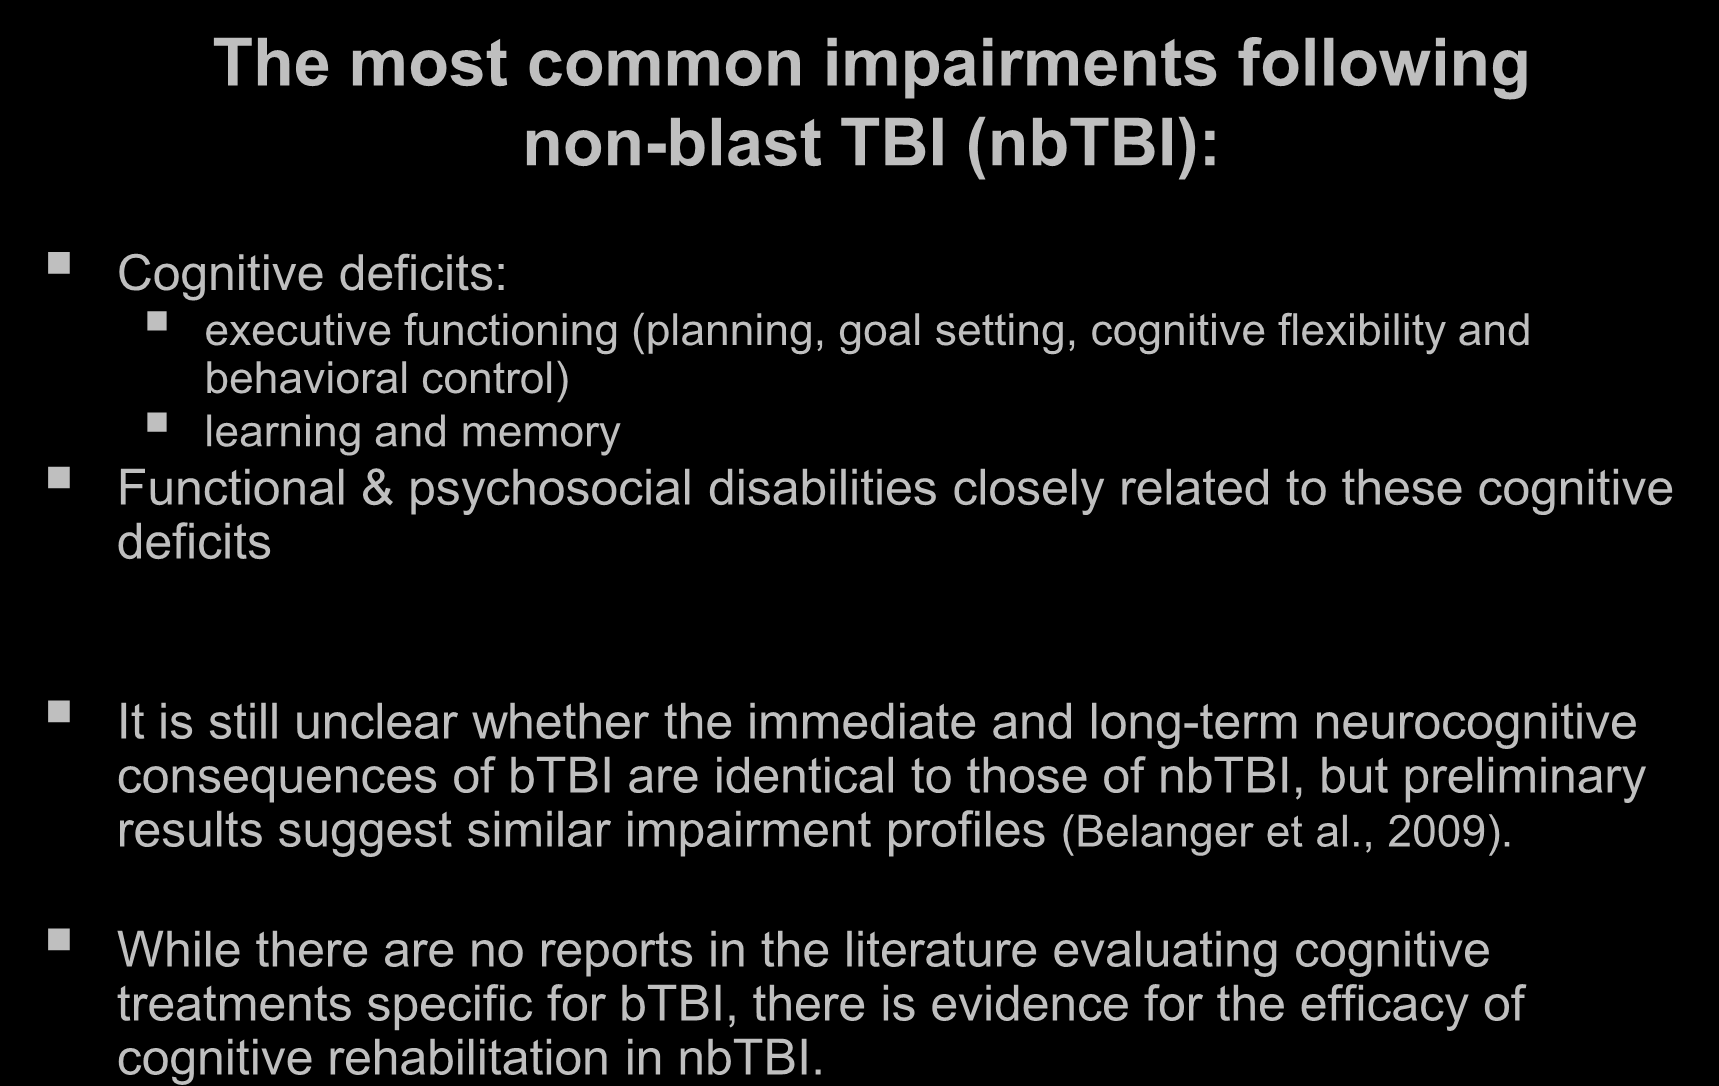 The most common impairments following non-blast TBI (nbtbi): Cognitive deficits: executive functioning (planning, goal setting, cognitive flexibility and behavioral control) learning and memory